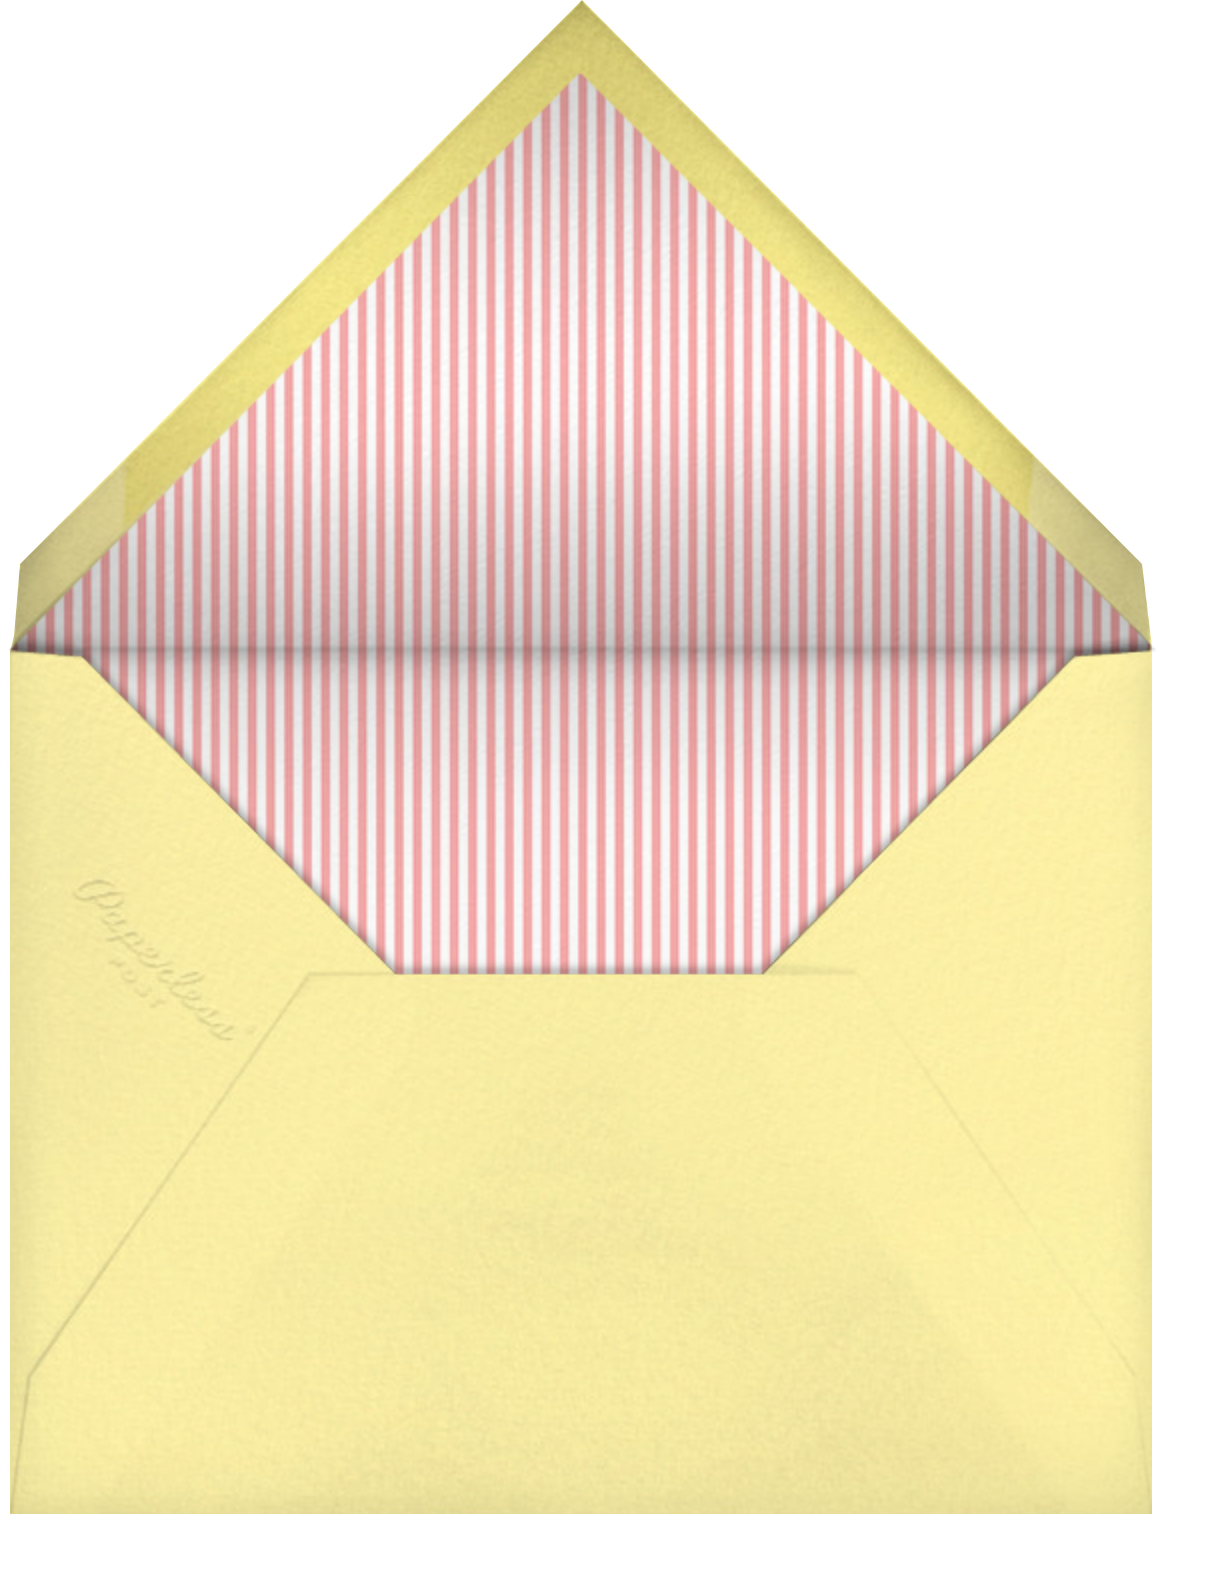 To the Rescue - Pink - Little Cube - Kids' birthday - envelope back